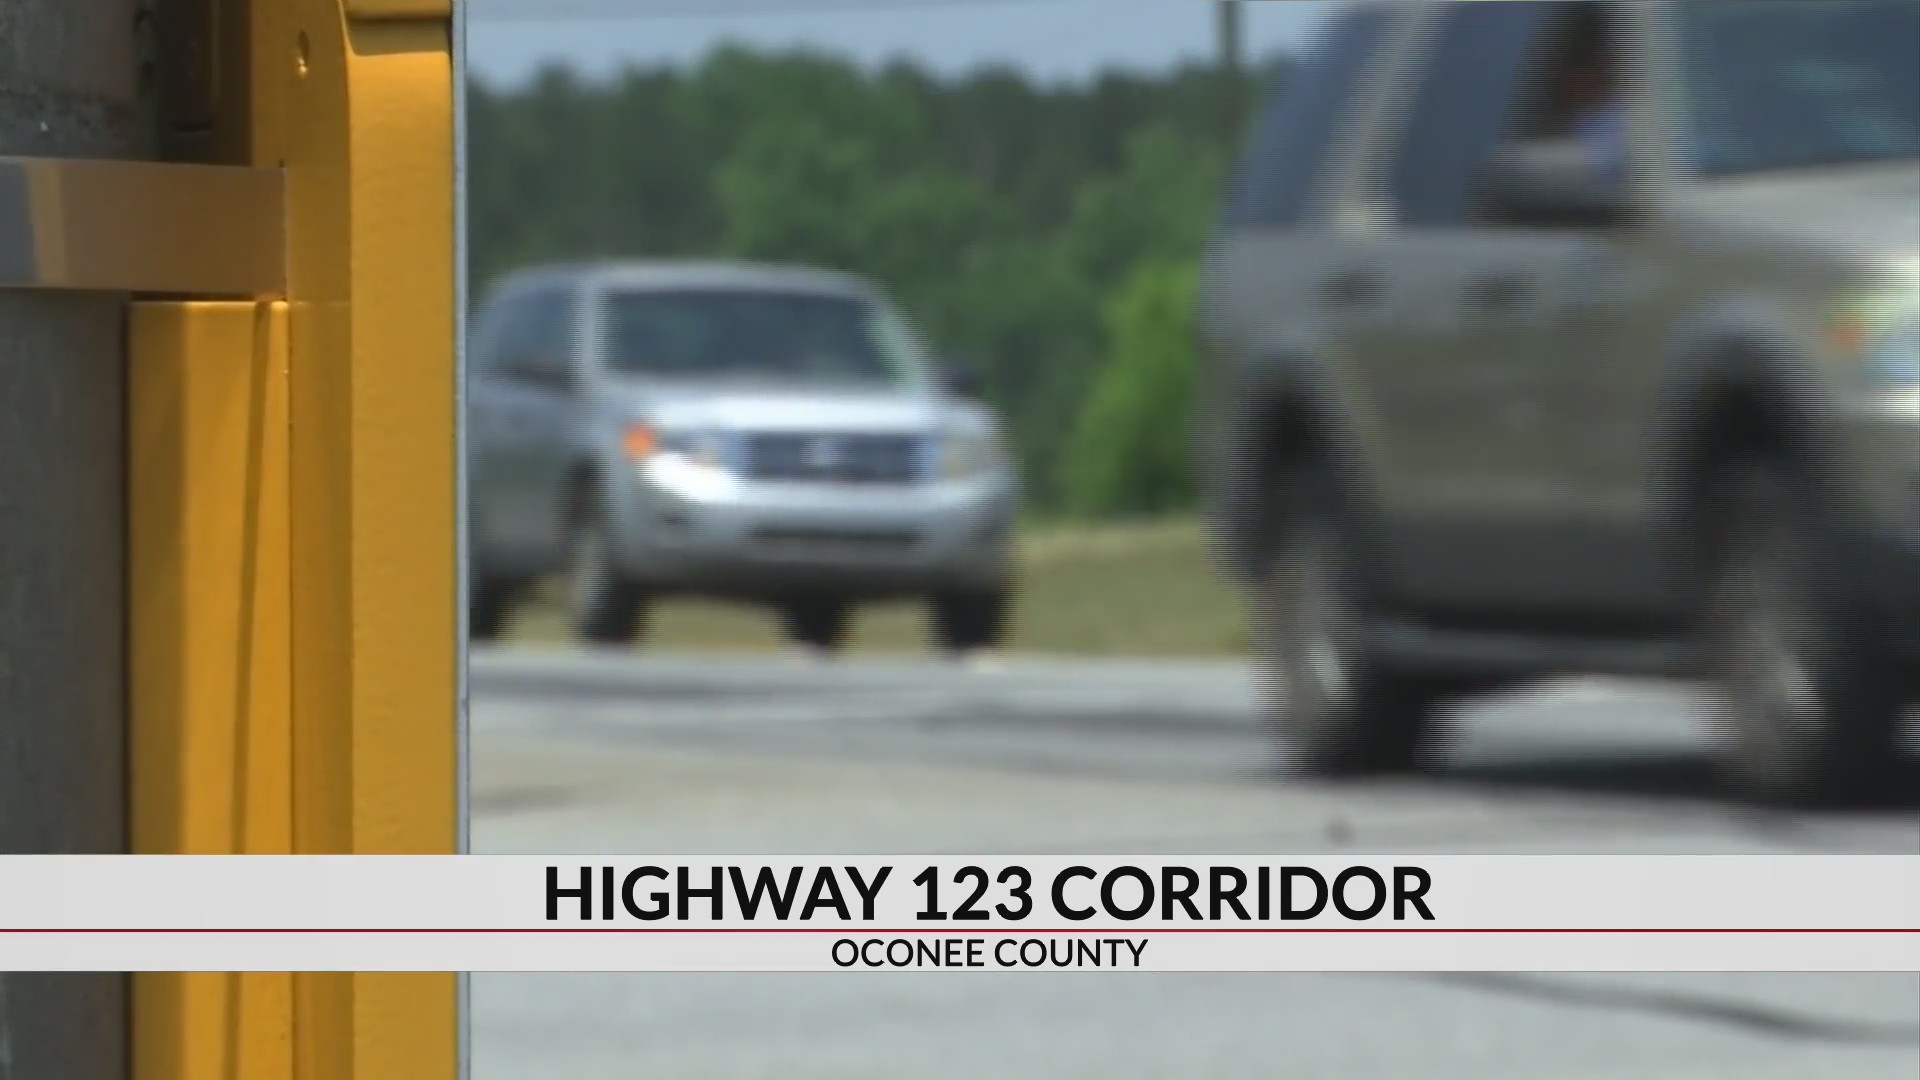 Economic, traffic boom in Oconee County leads to drafts for Hwy 123 corridor plan